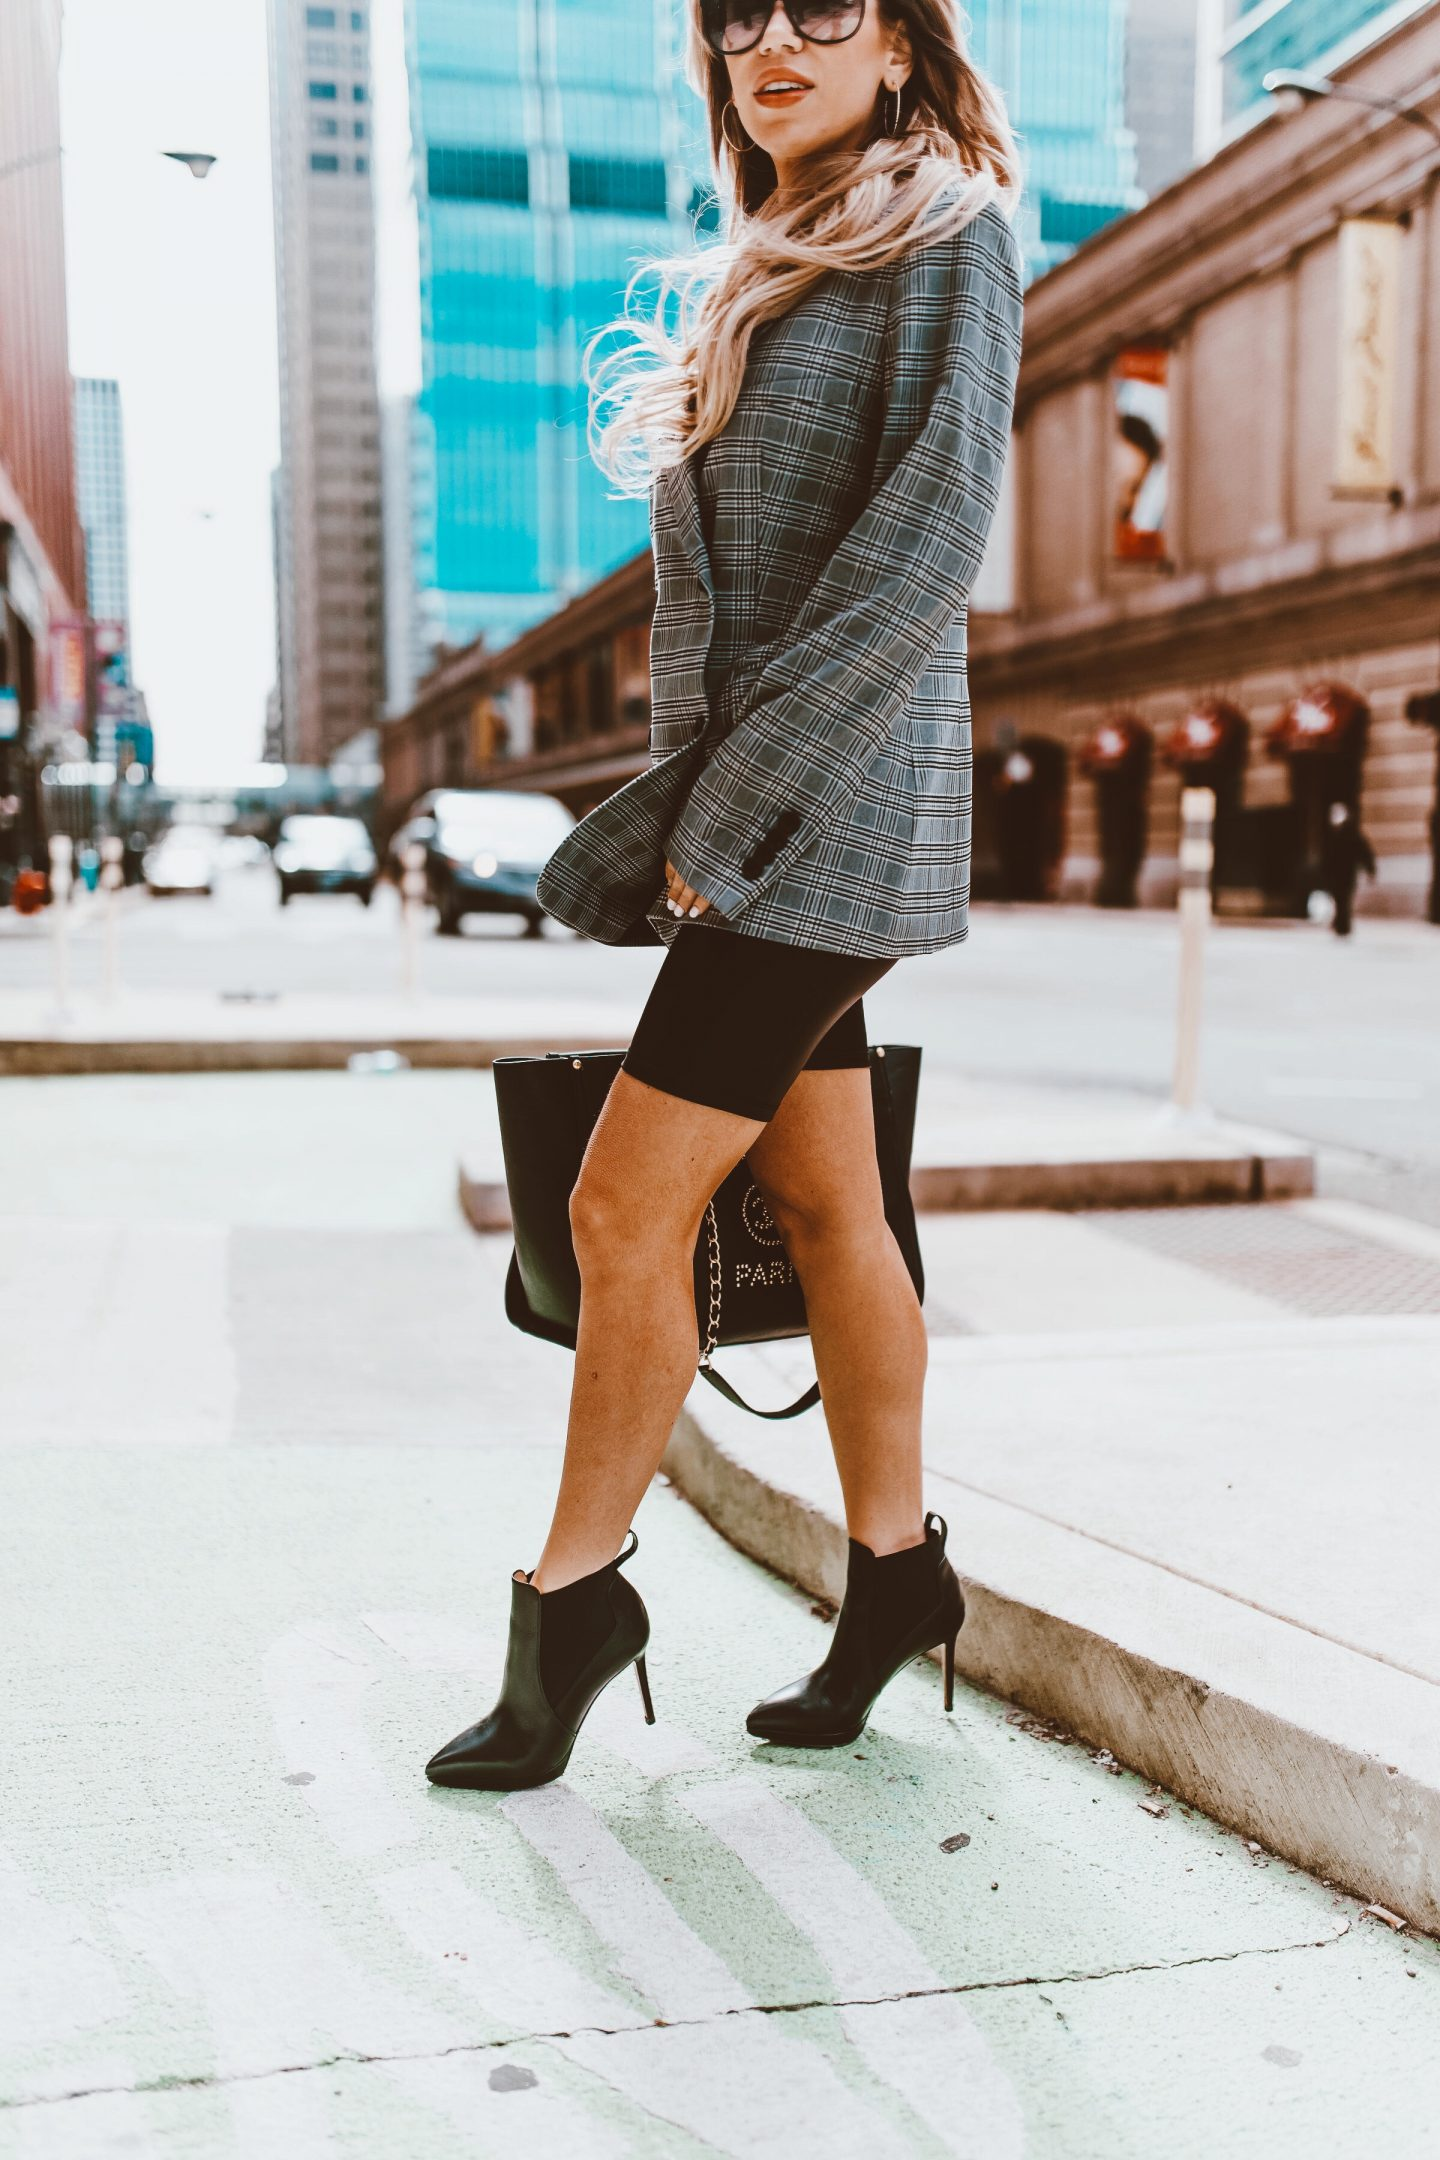 current fashion trends, fashion blogger, spring trends, spring fashion, summer fashion, mom blogger, Chicago blogger, Chicago fashion, mommy blogger, trends, fashion looks, fashion must haves